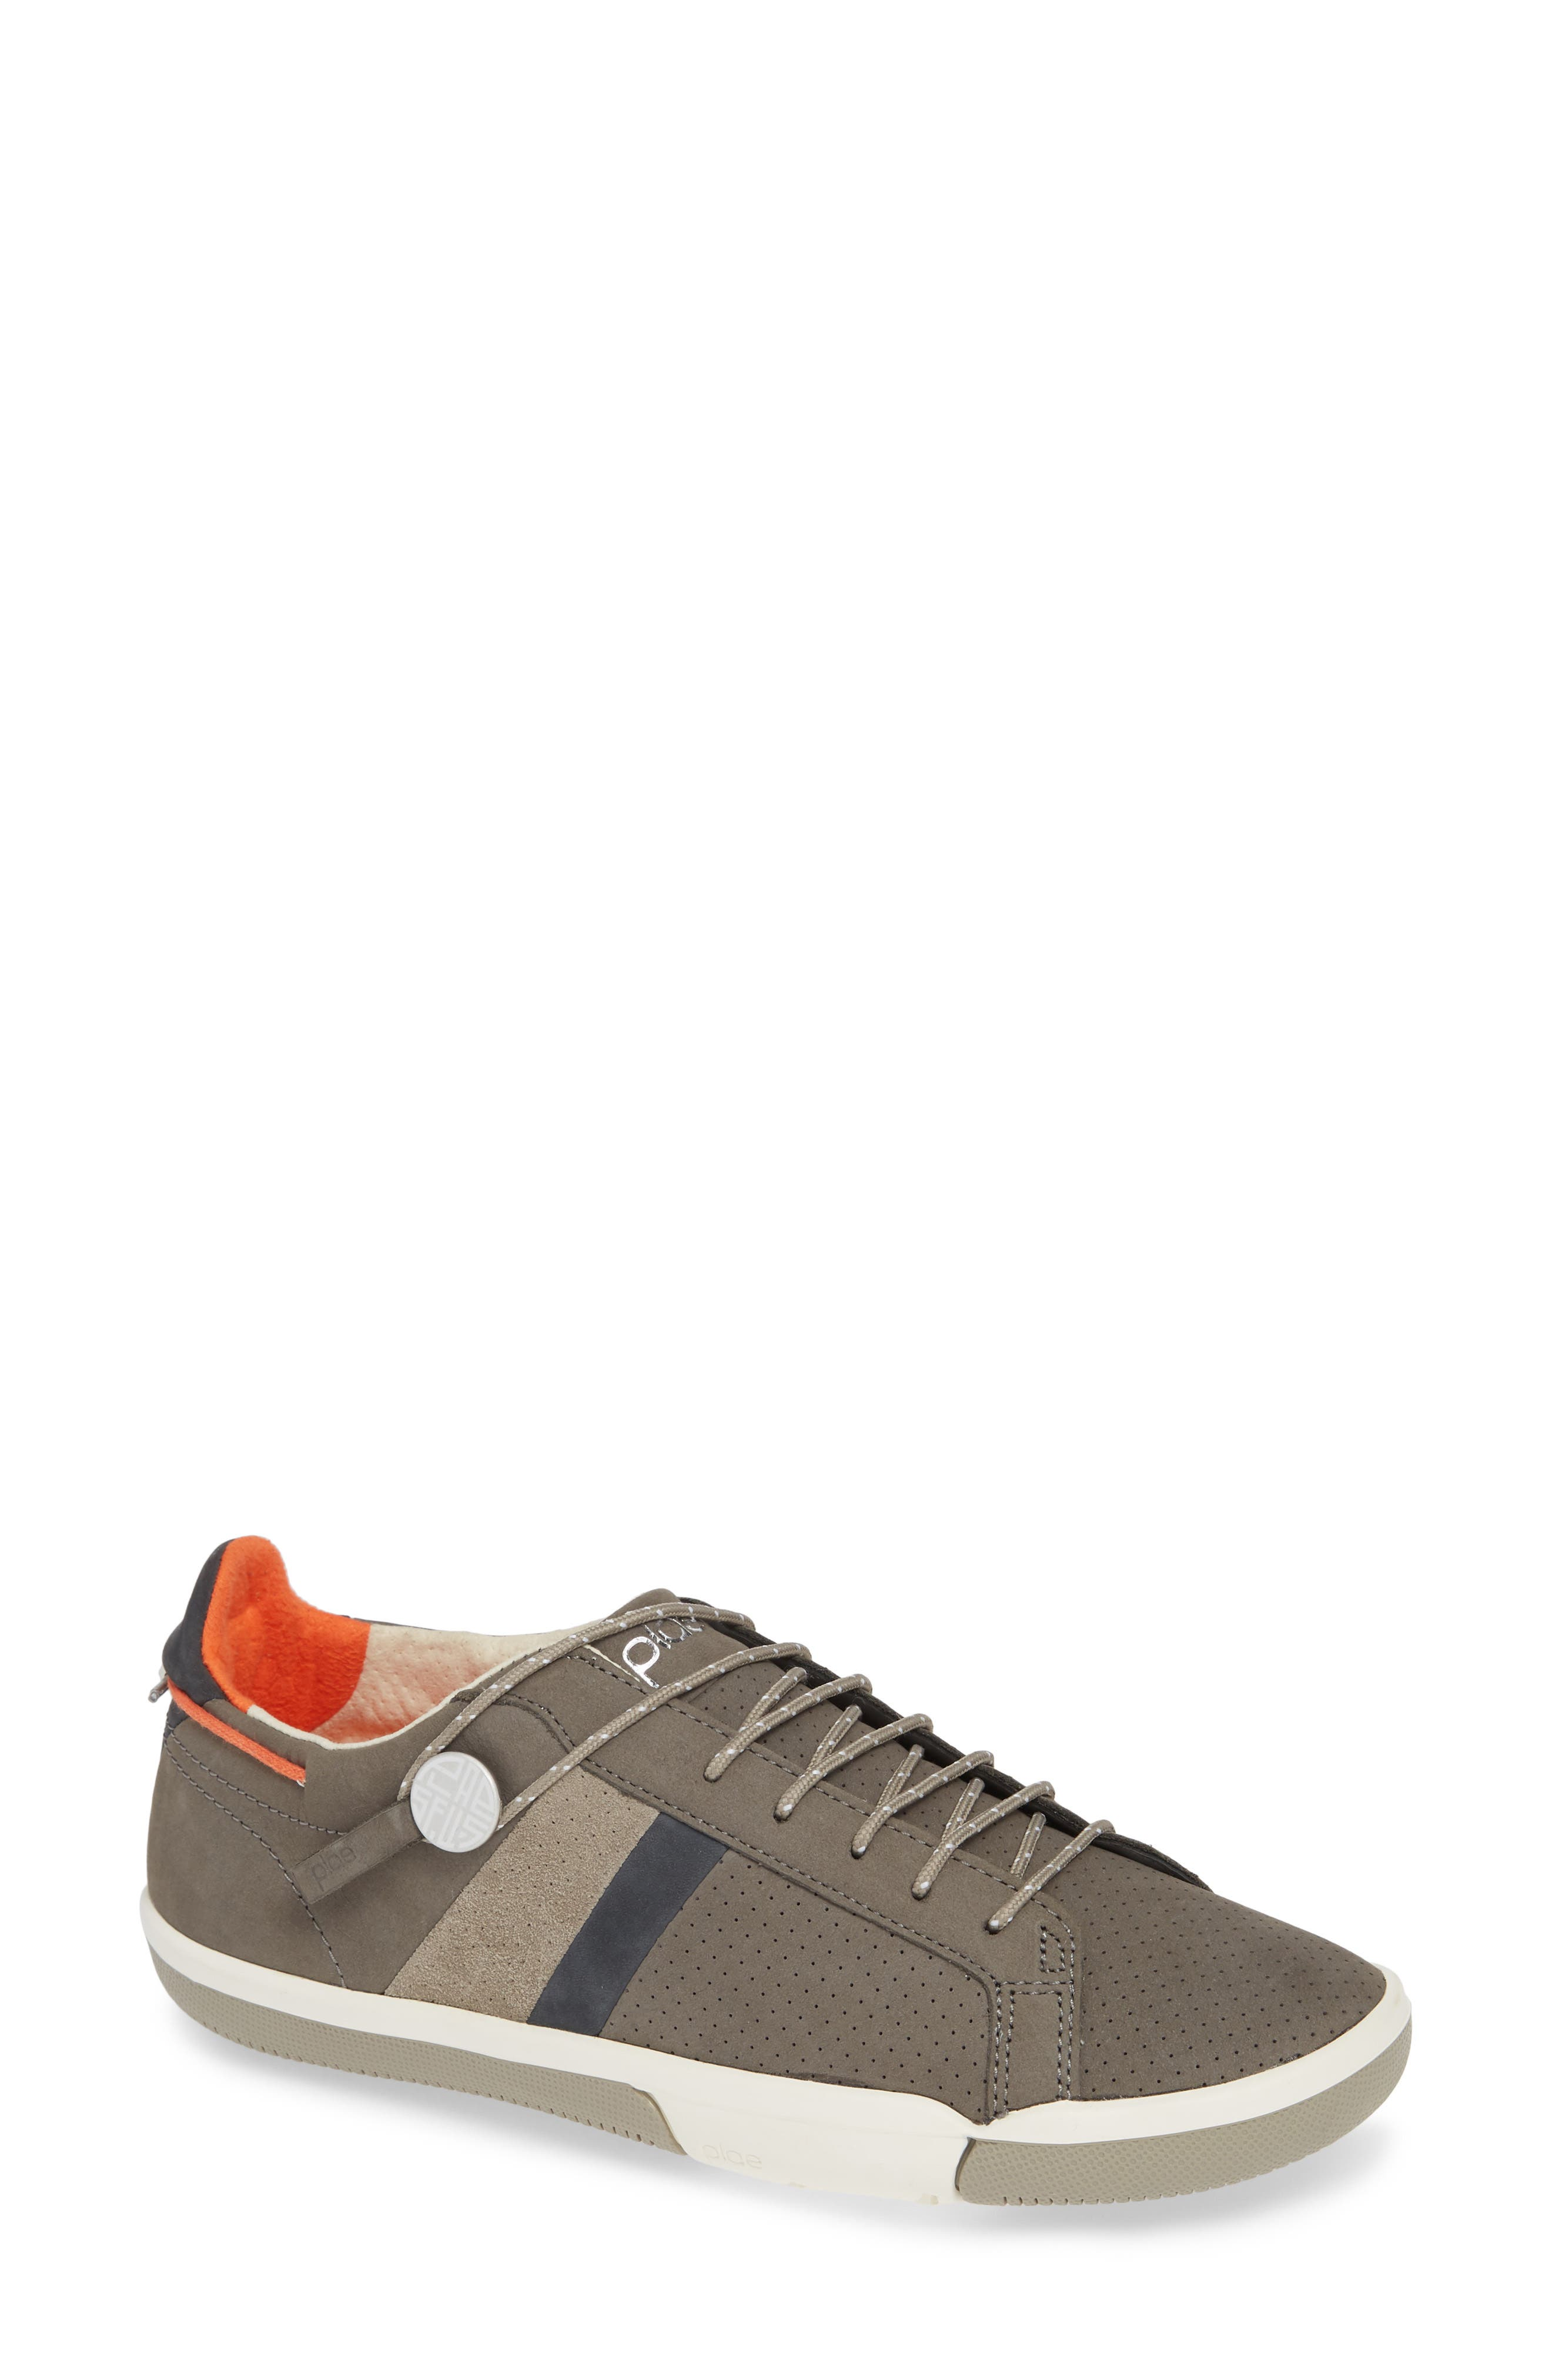 Mulberry Sneaker,                             Main thumbnail 1, color,                             GREY NUBUCK LEATHER